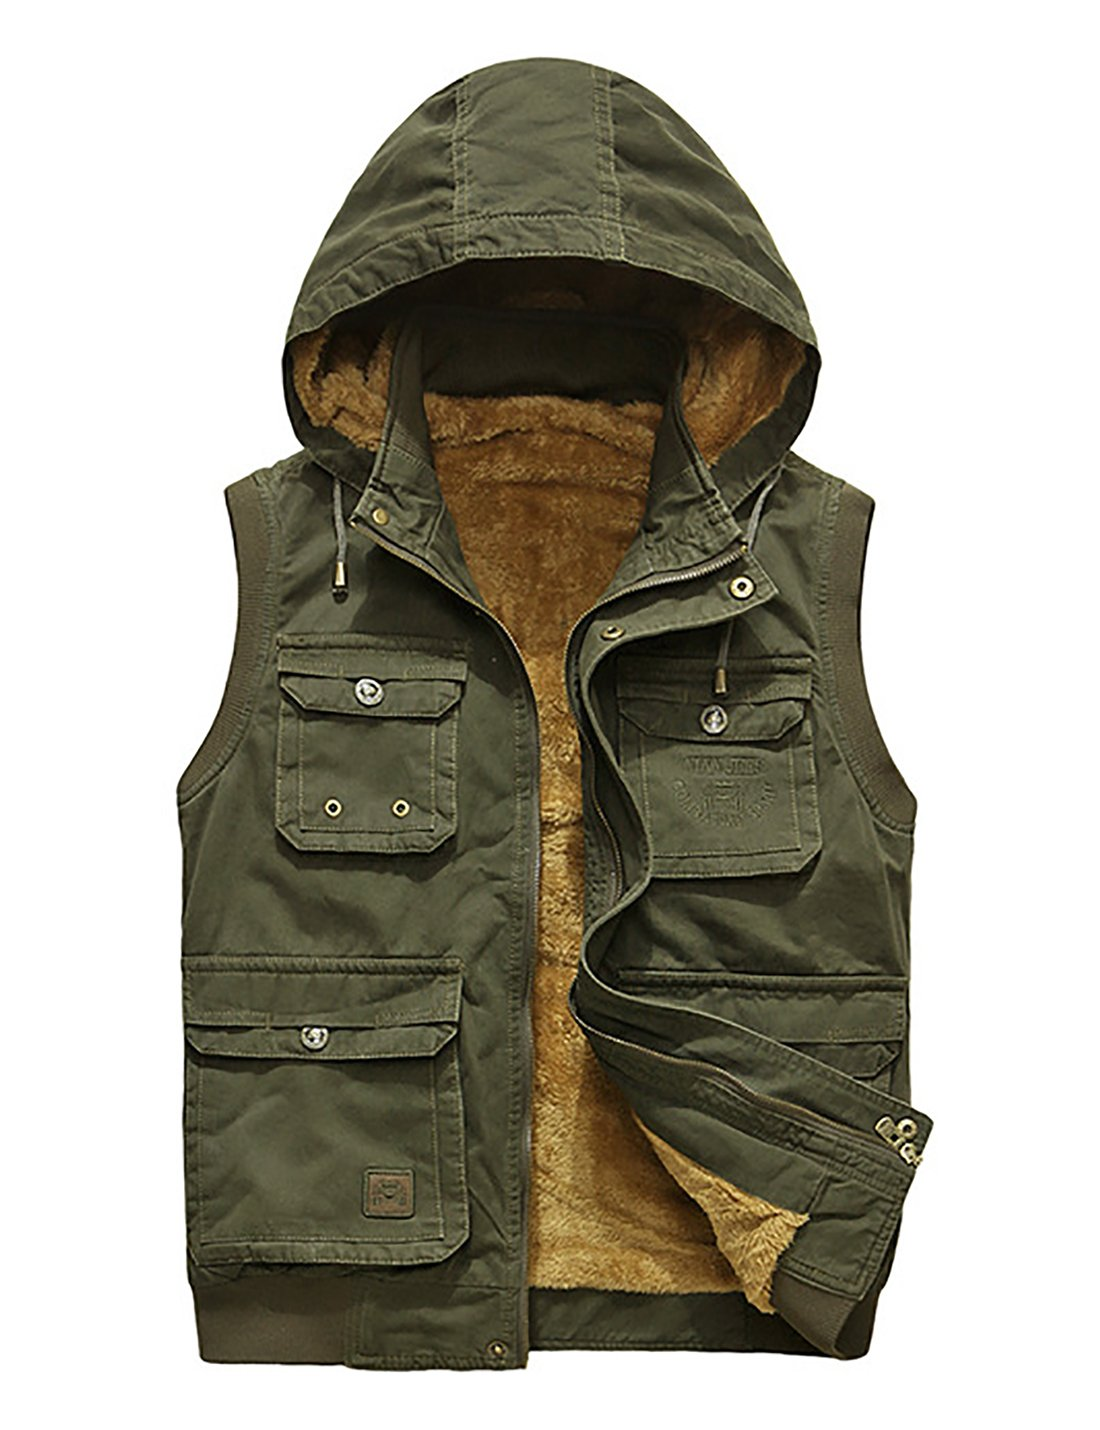 Gihuo Men's Outdoor Leisure Pockets Fish Vest Winter Thick Fleeced Waistcoat (L, Army Green)